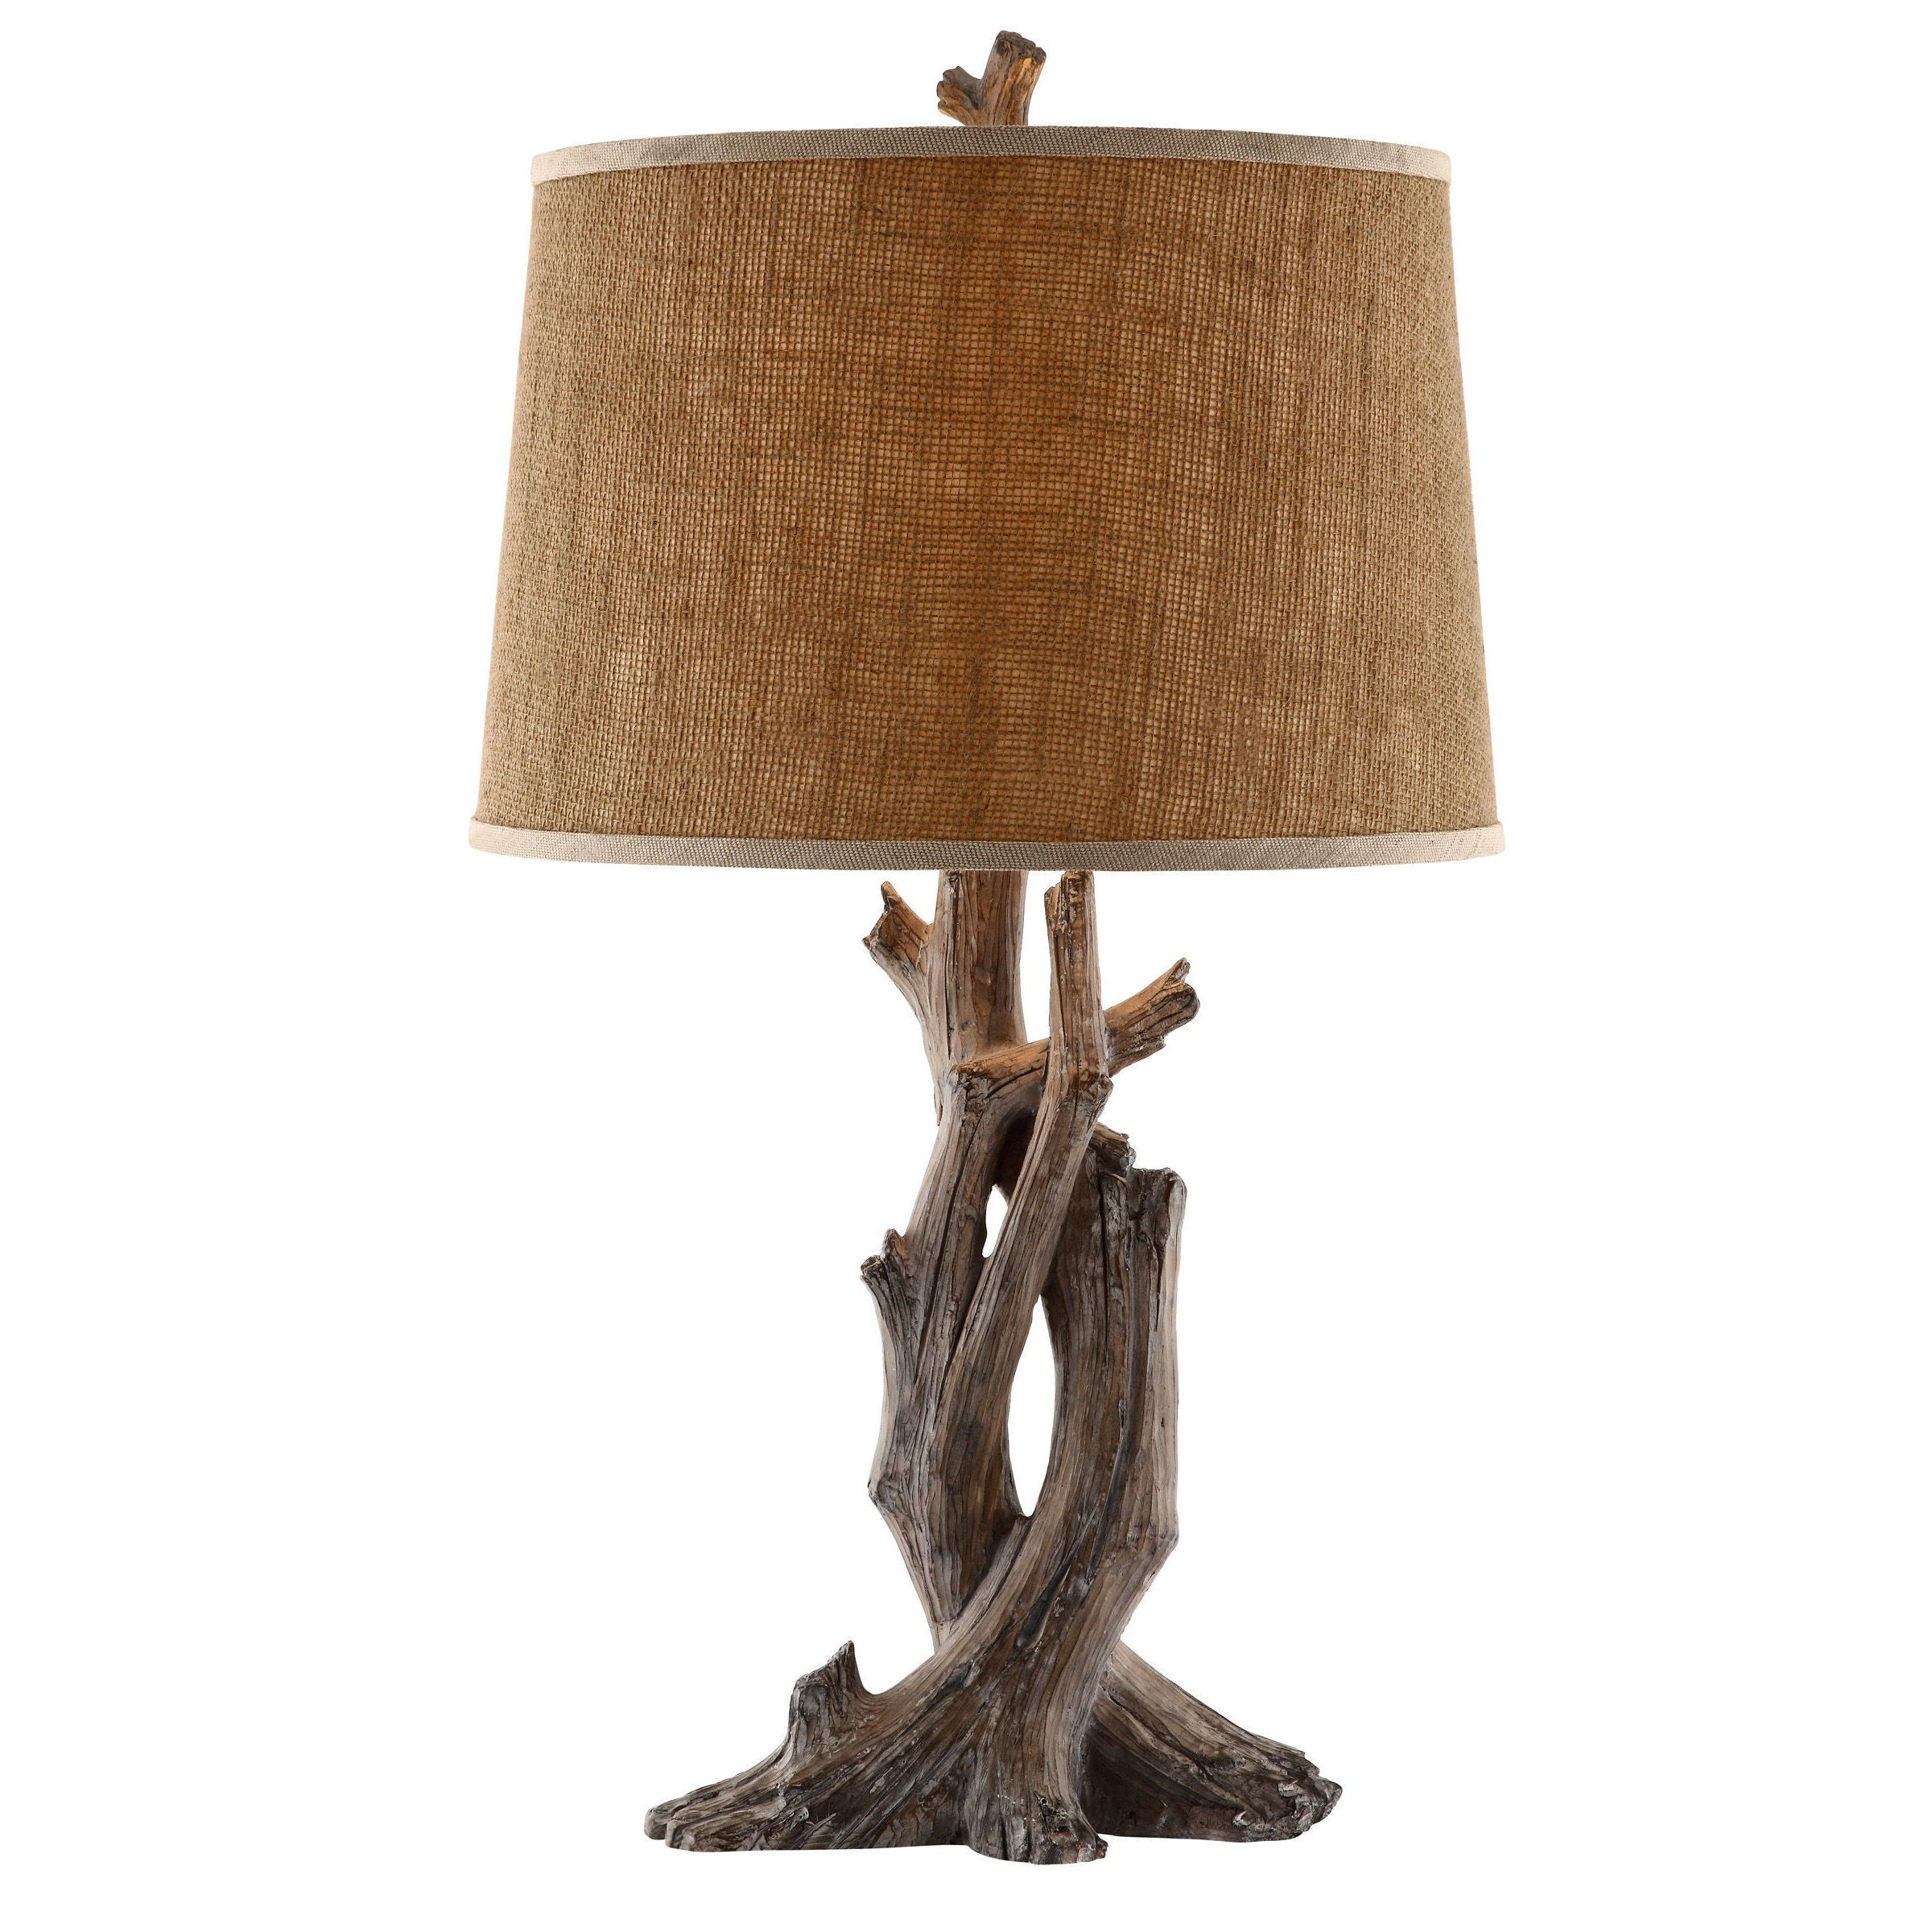 Yellow papillion lamp base by bungalow 5 rosenberryrooms com - Cusworth Resin Natural Wood Table Lamp By Elk Lighting